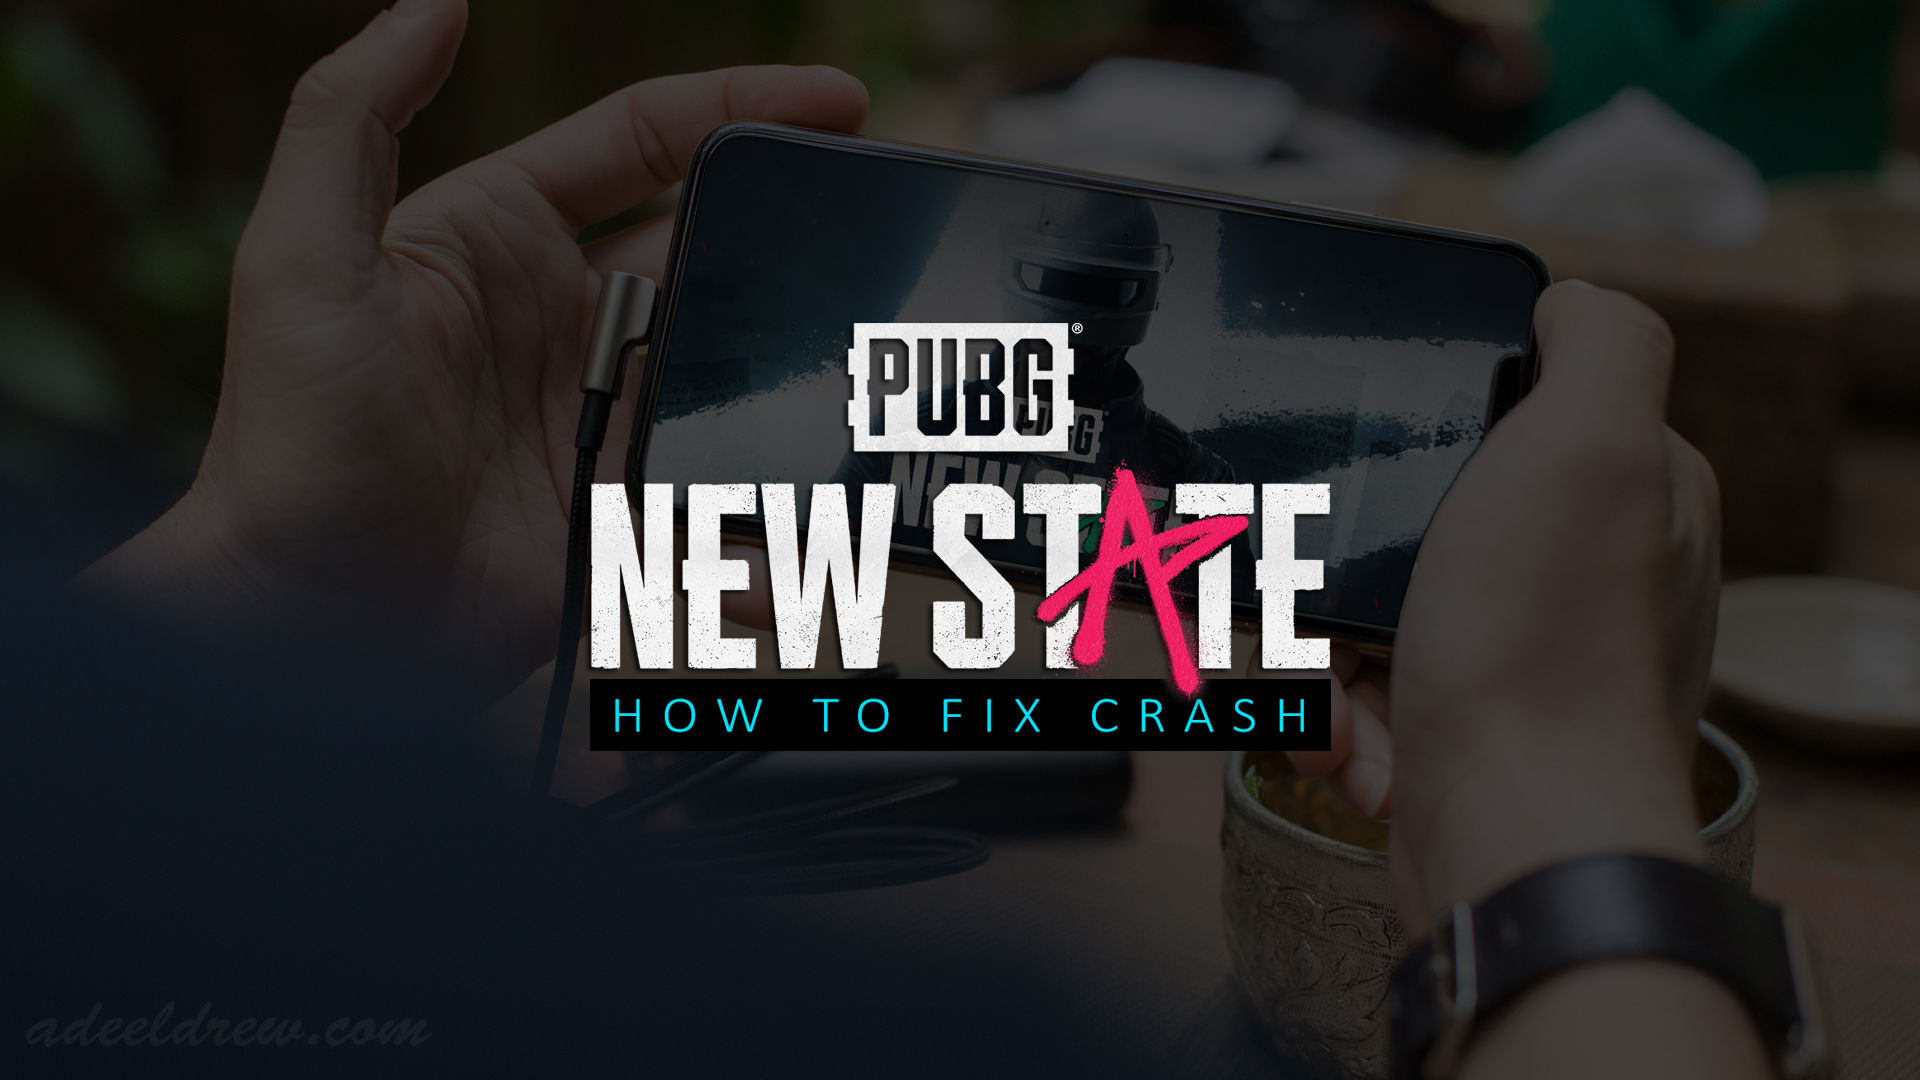 How to Fix PUBG: NEW STATE Crash, Lag, and Low FPs Issues on Phone and PC - AdeelDrew PlayerUnknown's Battlegrounds Issue and Problem Solutions. how to fix pubg lag how to fix pubg mobile crash how to fix pubg lag in gameloop how to fix pubg crash how to fix pubg map download error how to fix pubg white screen pc how to fix pubg emulator lag how to fix pubg auto close in gameloop how to fix pubg audio how to fix pubg auto close how to fix pubg audio problem how to fix pubg aiming how to fix pubg app not installed how to fix pubg authorization revoked how to solve pubg ancient puzzle how to fix pubg bug how to fix pubg bluetooth headphones how to fix pubg bluestacks how to fix banned pubg account how to fix bluestacks pubg mobile how to fix banned pubg mobile how to fix battleye pubg how to solve pubg ban how to fix pubg crash pc how to fix pubg controls how to fix pubg crash mobile how to fix pubg crashing mid game how to fix pubg connection timeout how to fix pubg crash on phoenix os how to fix pubg crash in iphone how to fix pubg downloading resources how to fix pubg device not supported how to fix pubg desync how to fix pubg download failed how to fix pubg download error how to fix desync pubg mobile how to fix desync pubg xbox one how to fix pubg server did not respond how to fix pubg emulator controls how to fix pubg emulator detected how to fix pubg emulator keyboard how to fix pubg emulator freeze how to fix pubg error code restrict area how to fix pubg error code how to fix pubg emulator stuck at 98 how to fix pubg freezing how to fix pubg frame drops how to fix pubg fps drop 2020 how to fix pubg from crashing how to fix fps pubg how to fix pubg mobile frame drops how to fix pubg mobile fps drop how to fix fn key in pubg mobile how to fix pubg game chat on xbox how to fix pubg glitch how to fix pubg game crash how to fix pubg gyroscope delay how to fix pubg gun game mode crash how to fix pubg graphics glitch how to fix pubg gameplay management system how to 